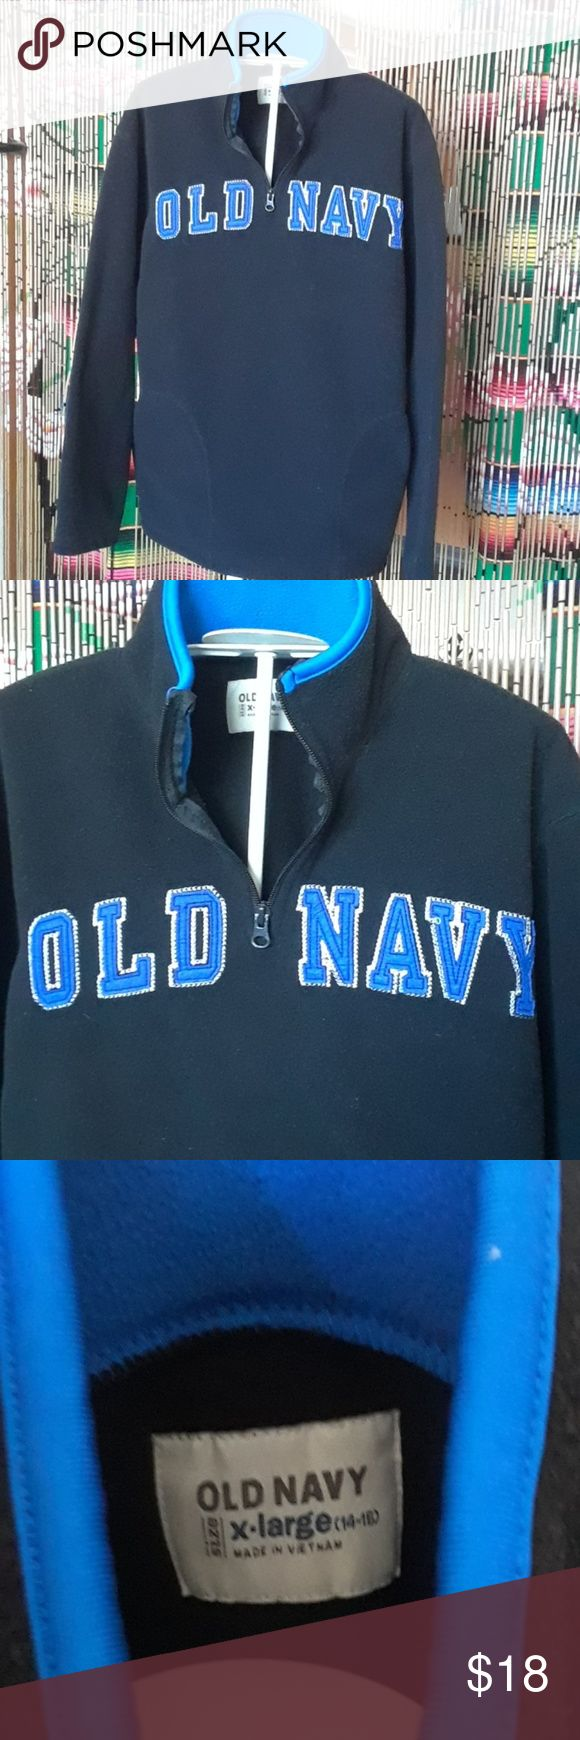 Old Navy fleece Black and blue Old Navy fleece pullover Bits size XL  14/16 Front pockets  My son won't wear it #likesbiggerclothes Old Navy Shirts & Tops Sweatshirts & Hoodies